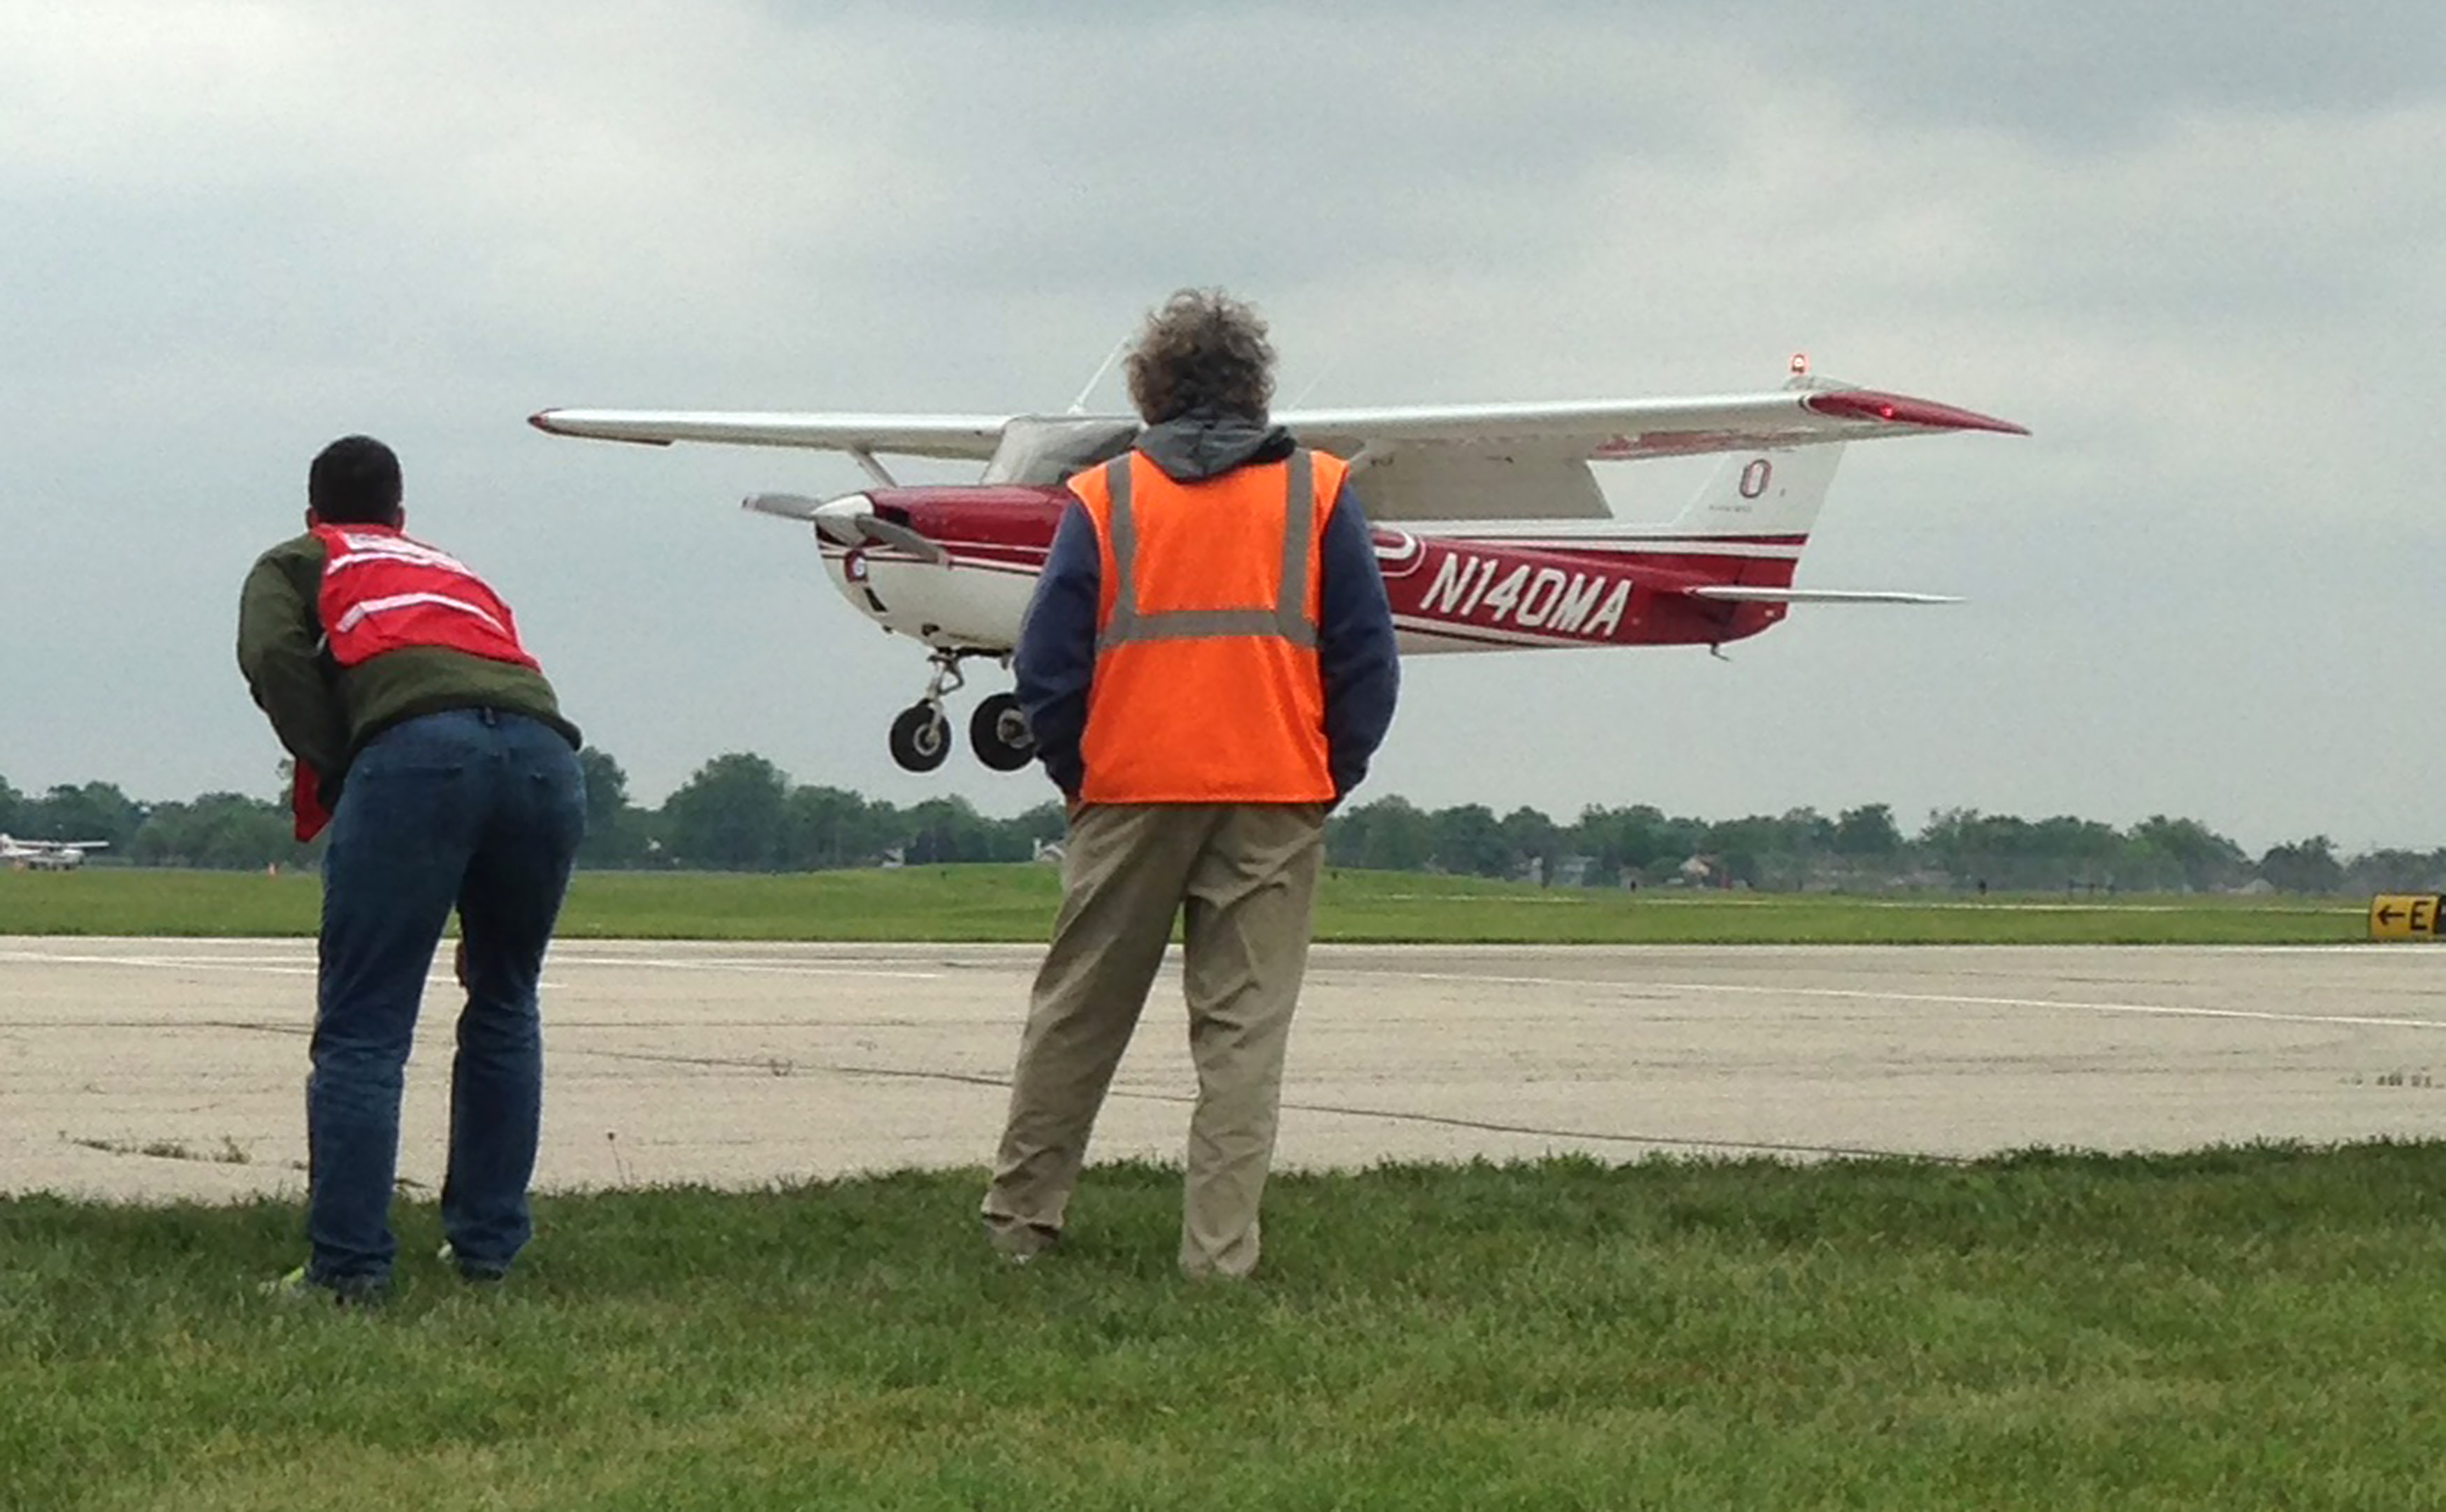 More than 380 college aviation students competed at Ohio State University during the annual National Intercollegiate Flying Association National Safety and Flight Evaluation Conference May 9 to 14. Photo by Julie Summers Walker.